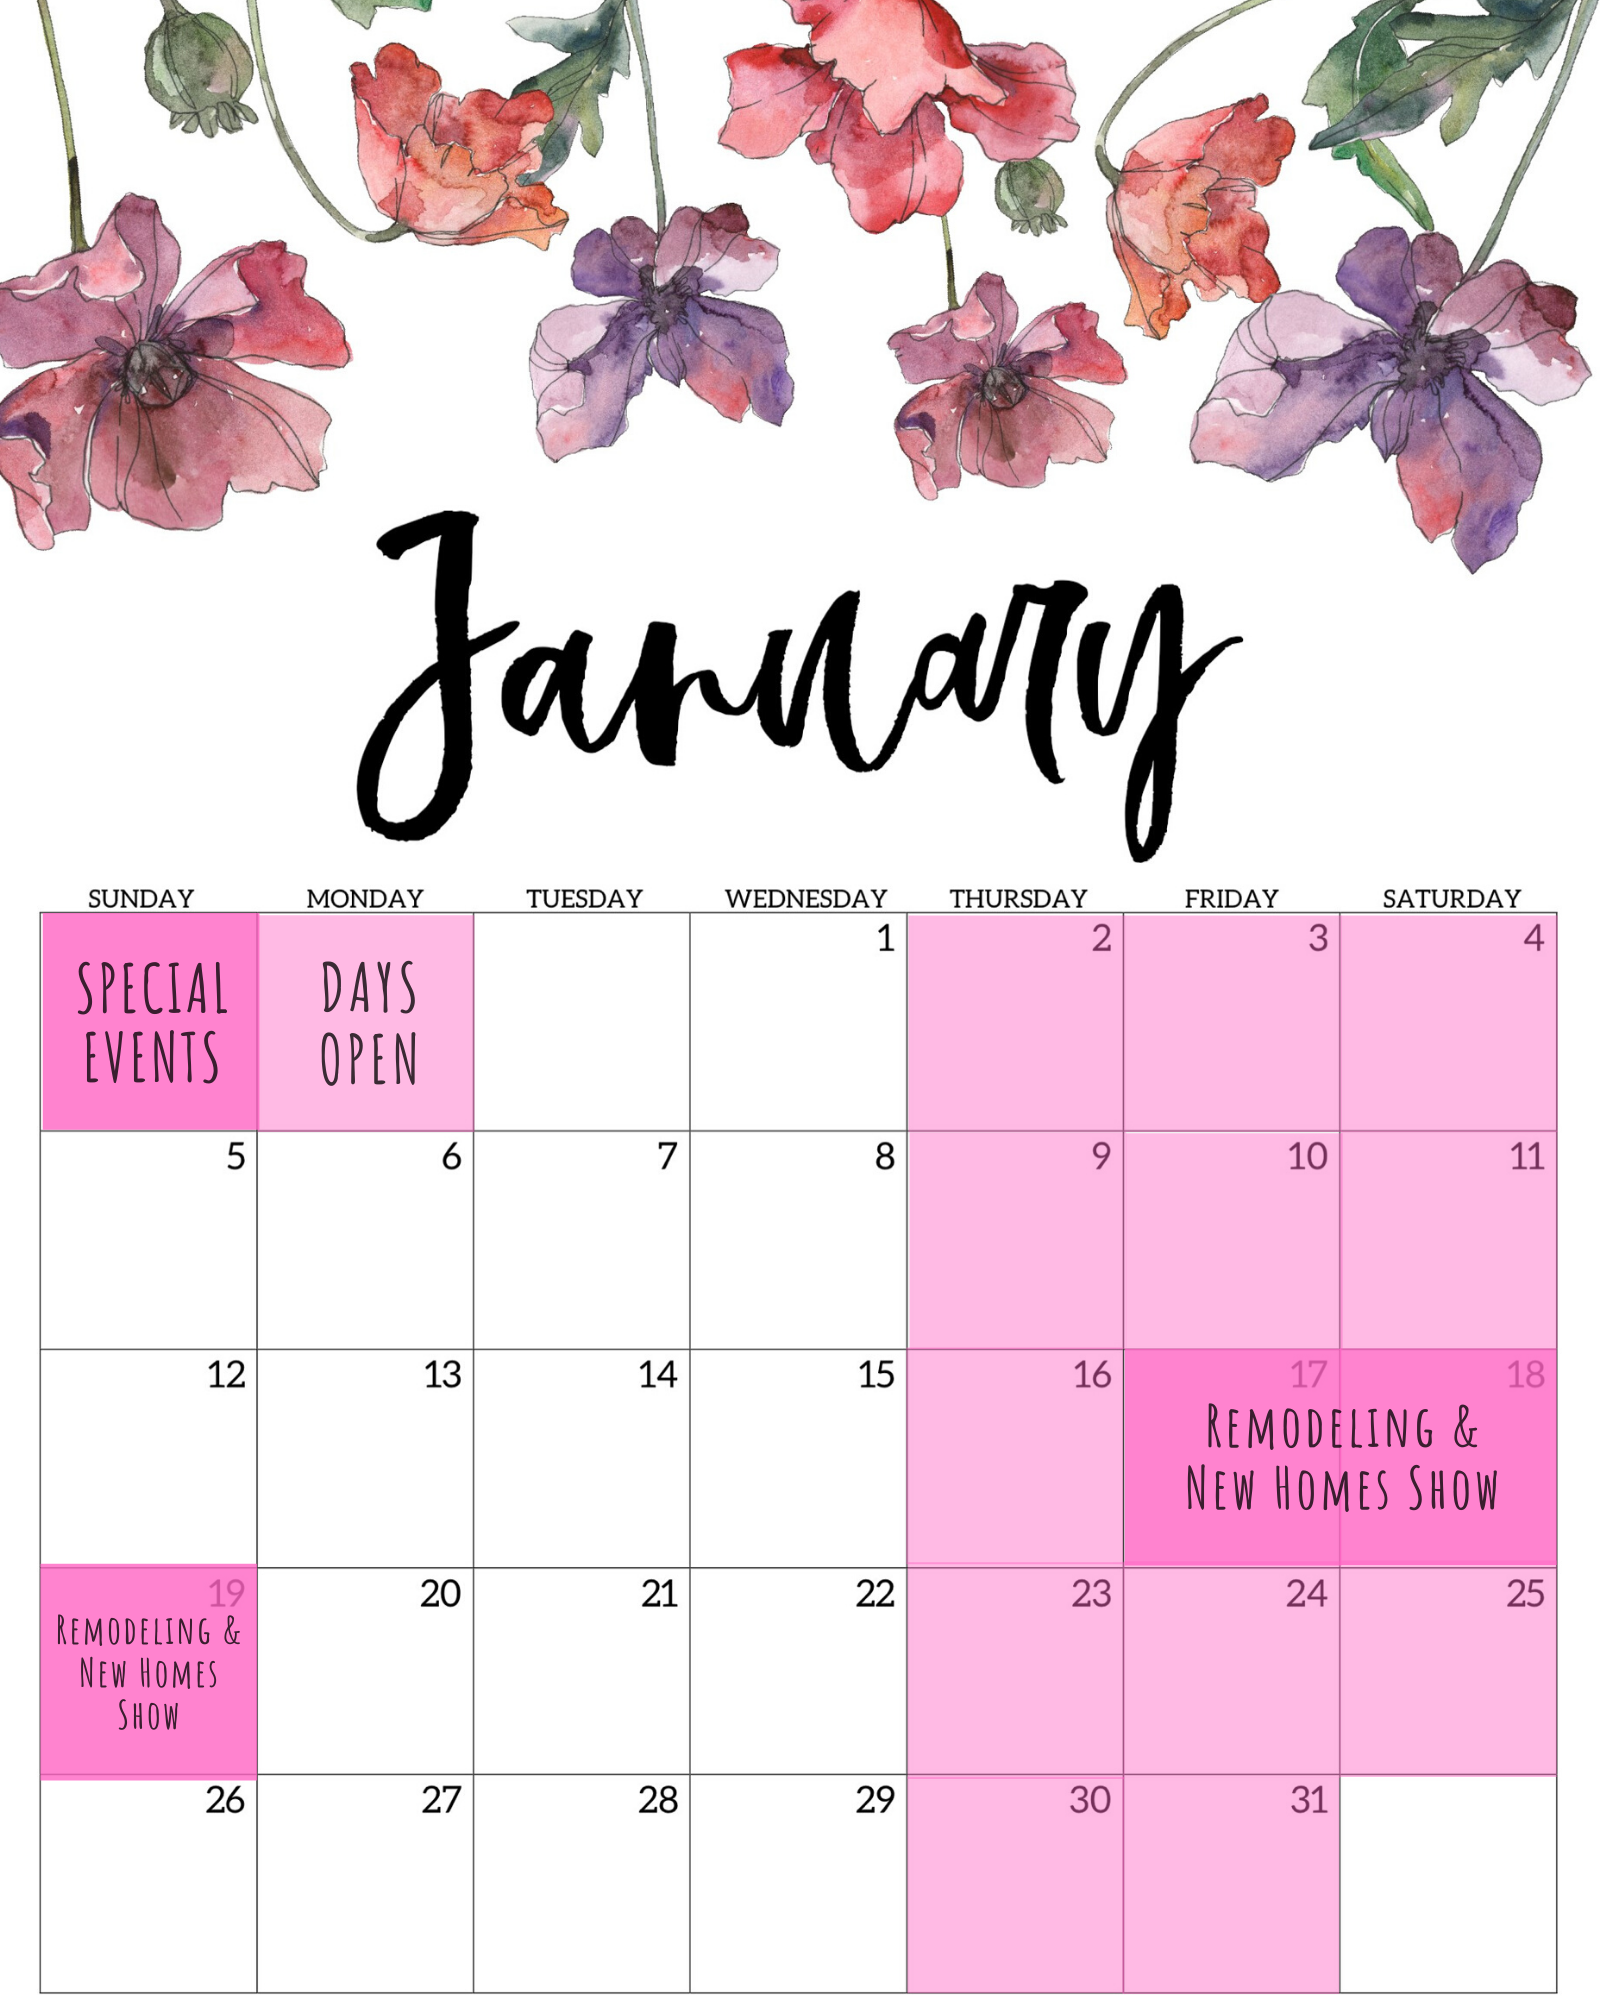 Delight In Designs-January Calendar- Events